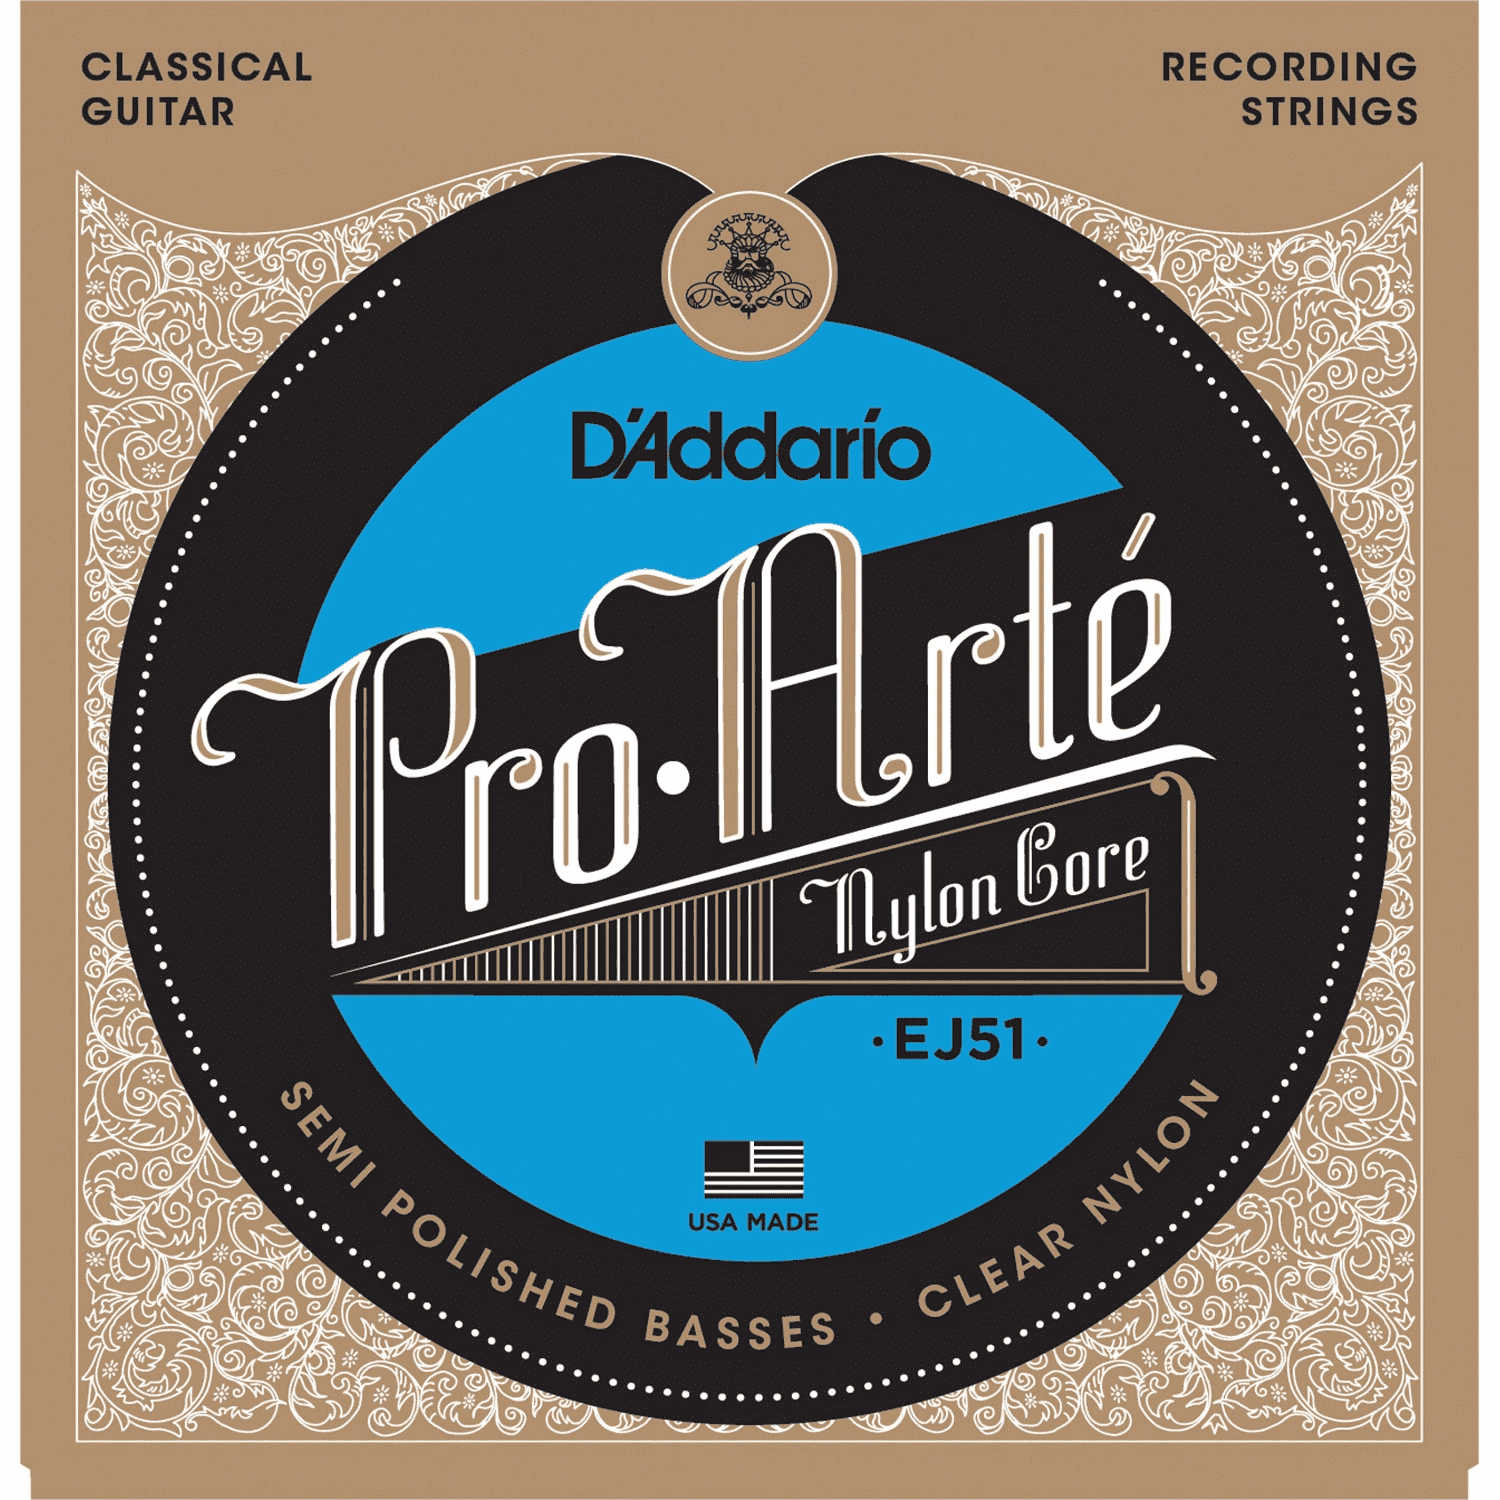 DAddario EJ51 Pro-Arte Classical Guitar Strings with Polished Basses Hard Tension